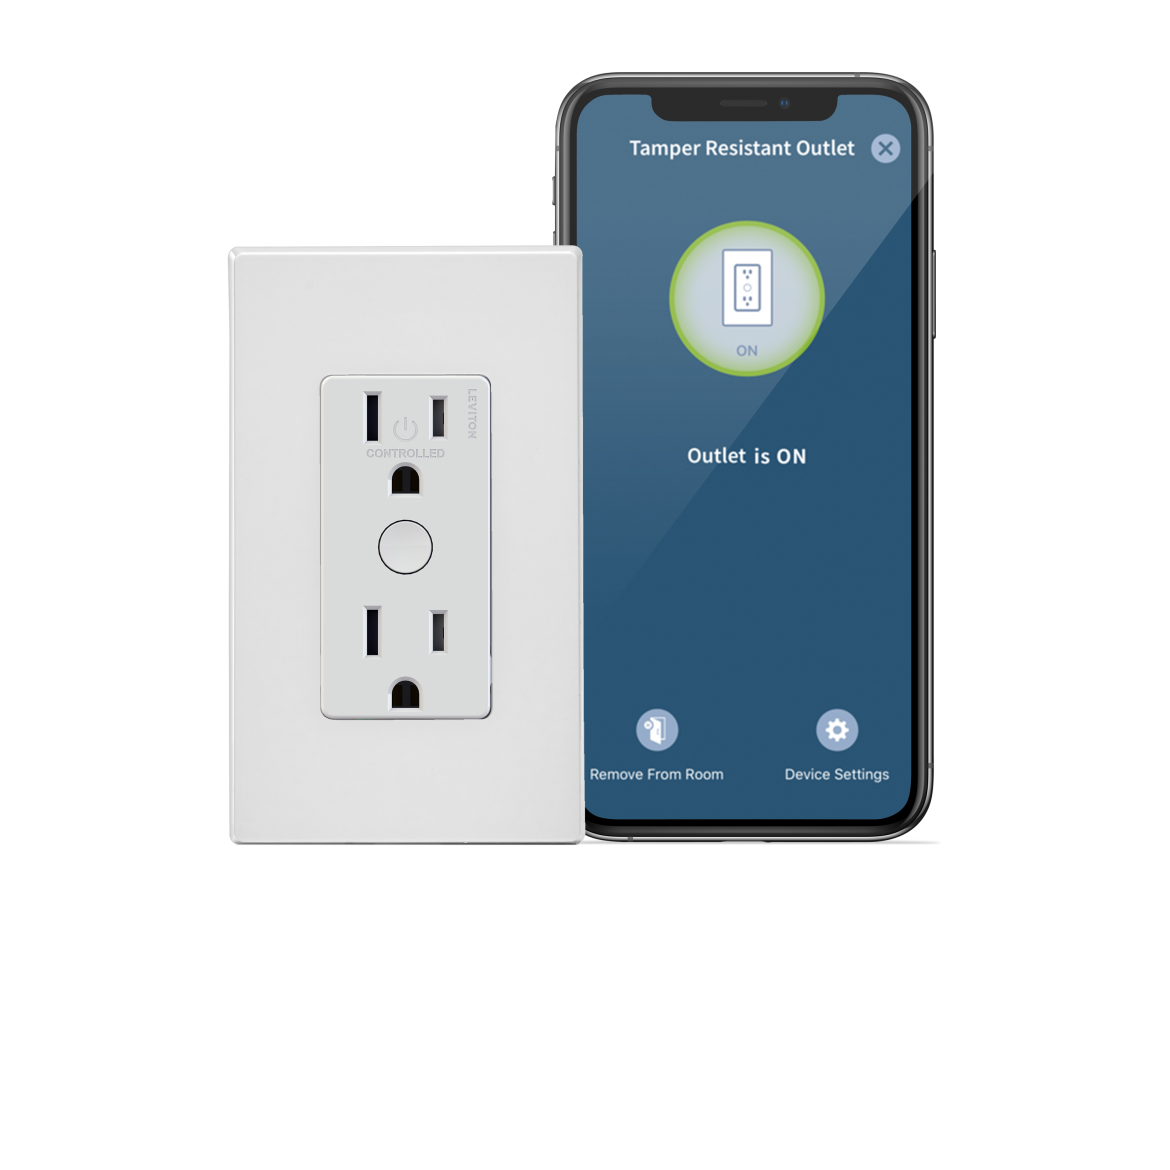 Leviton Decora Smart Wi-Fi Tamper Resistant Outlet with Cell phone